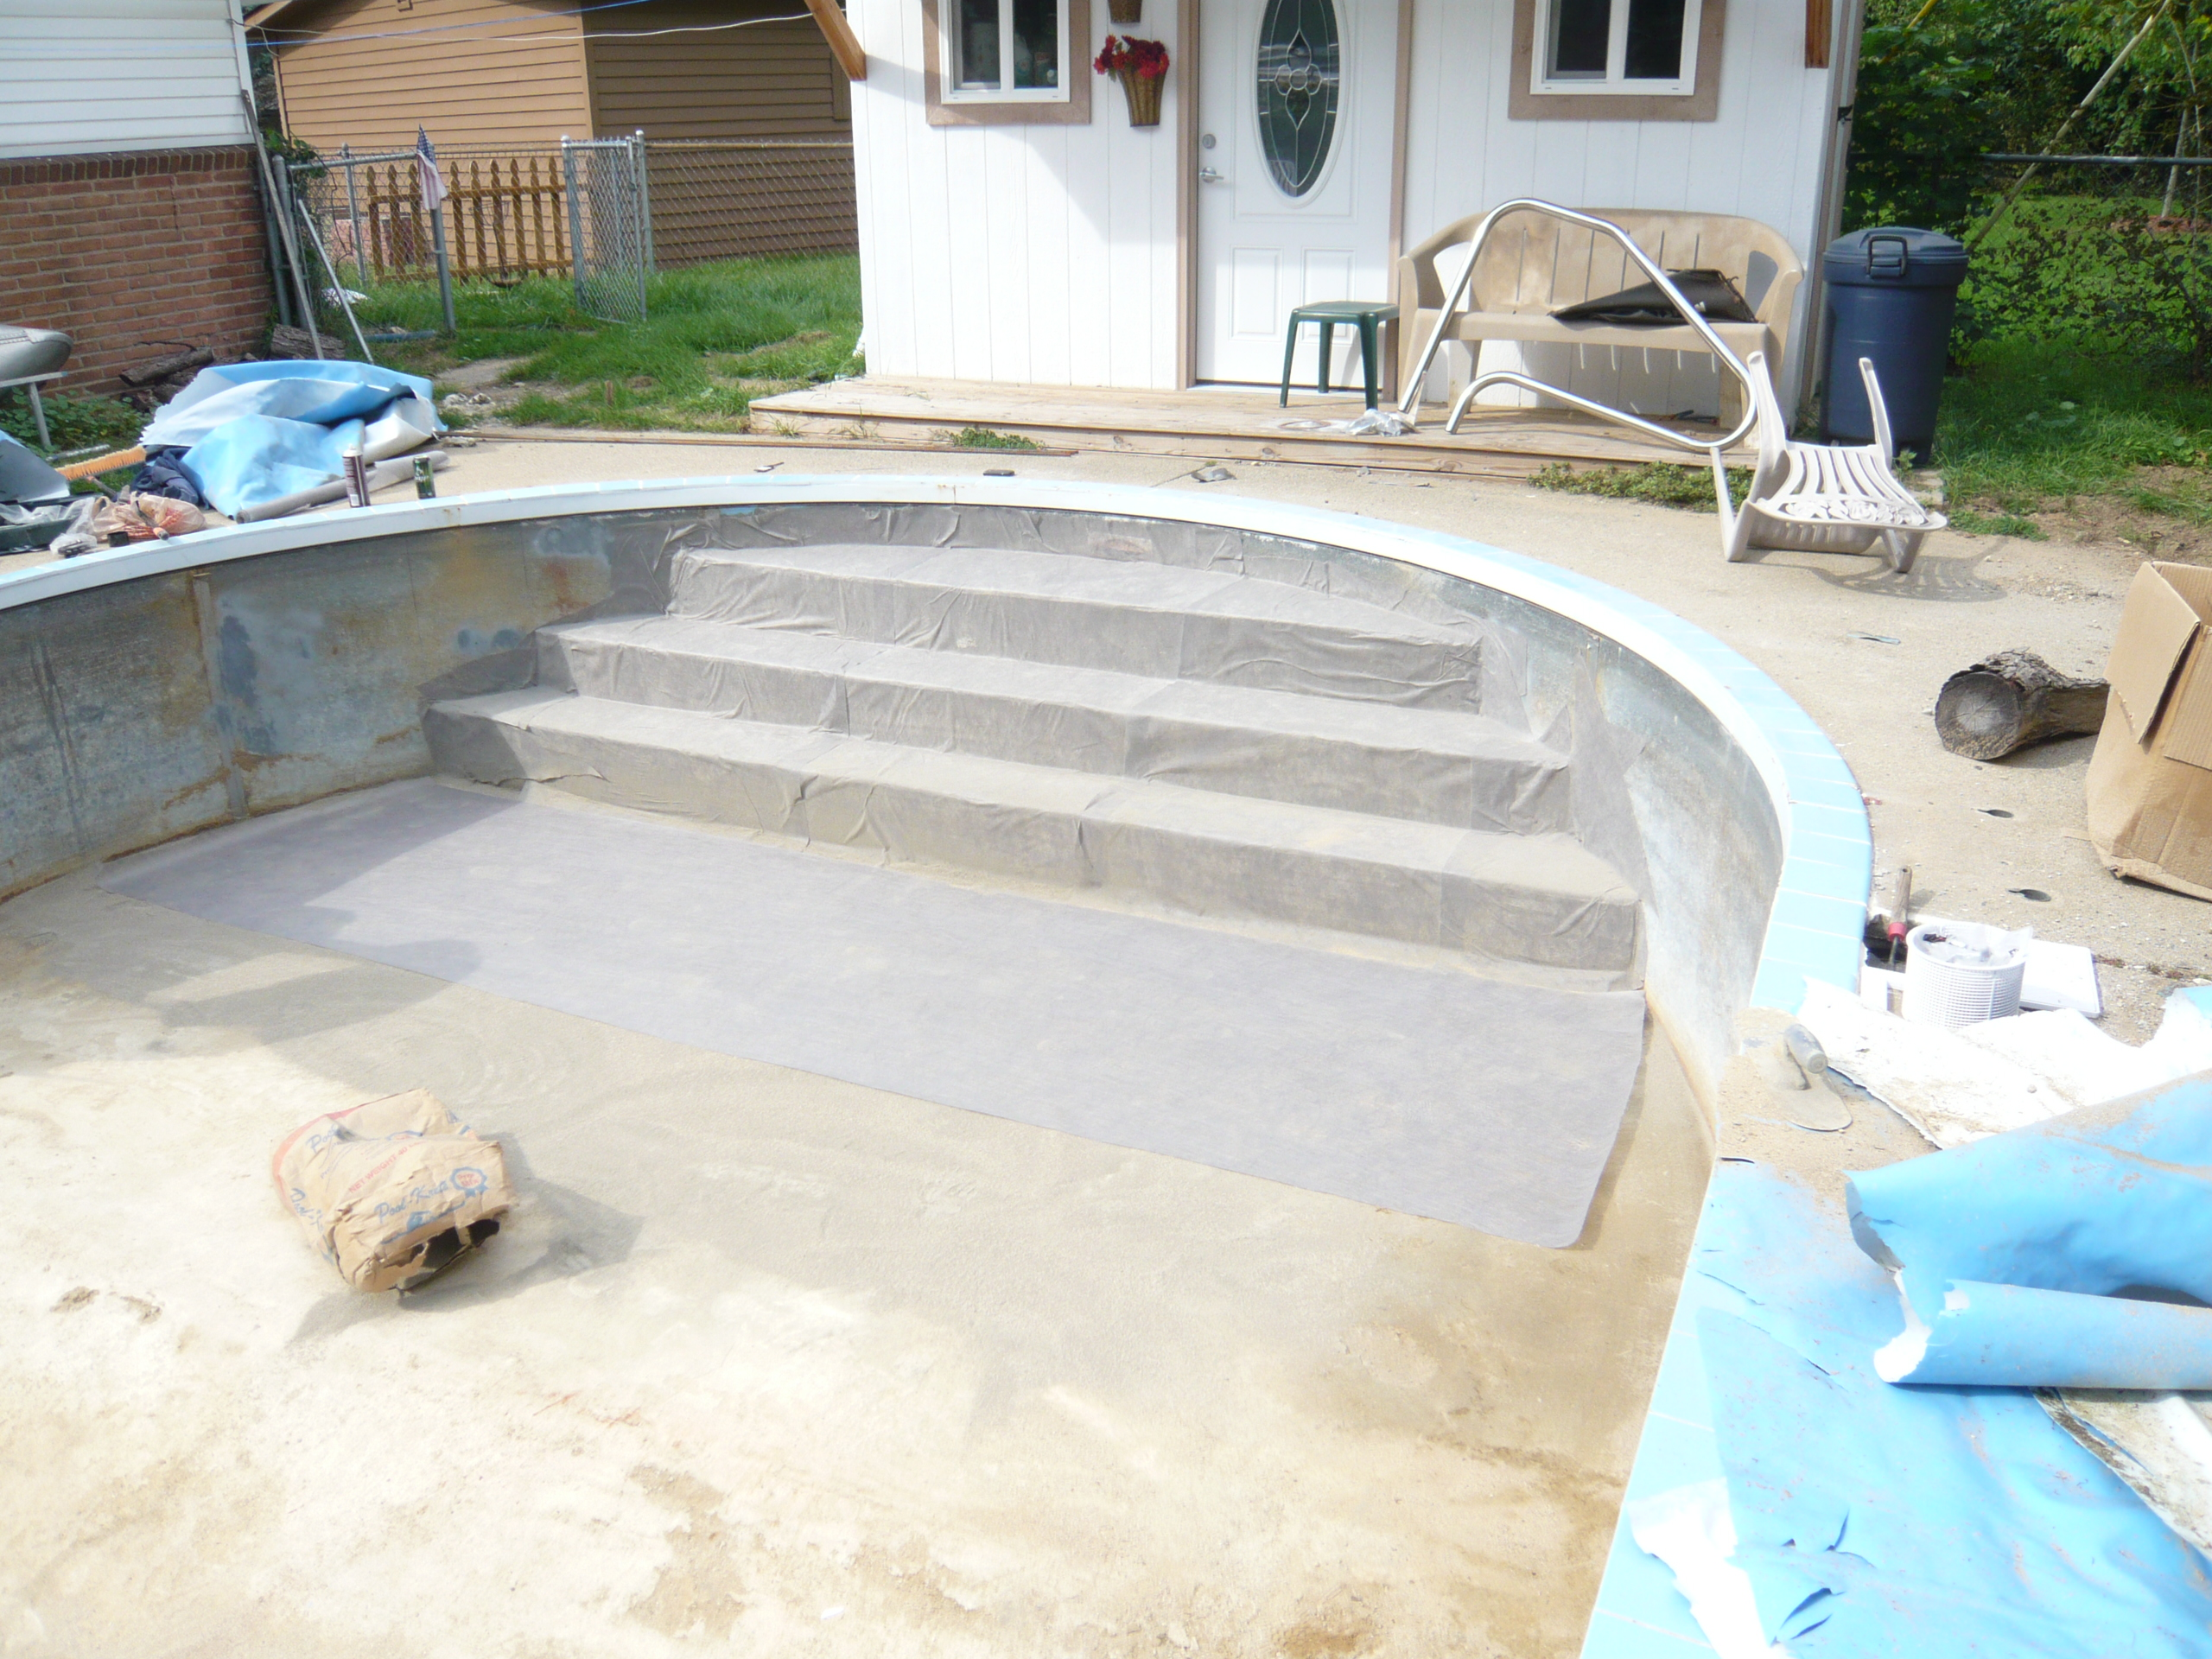 Can I Add Steps To An Existing Vinyl Liner Pool?